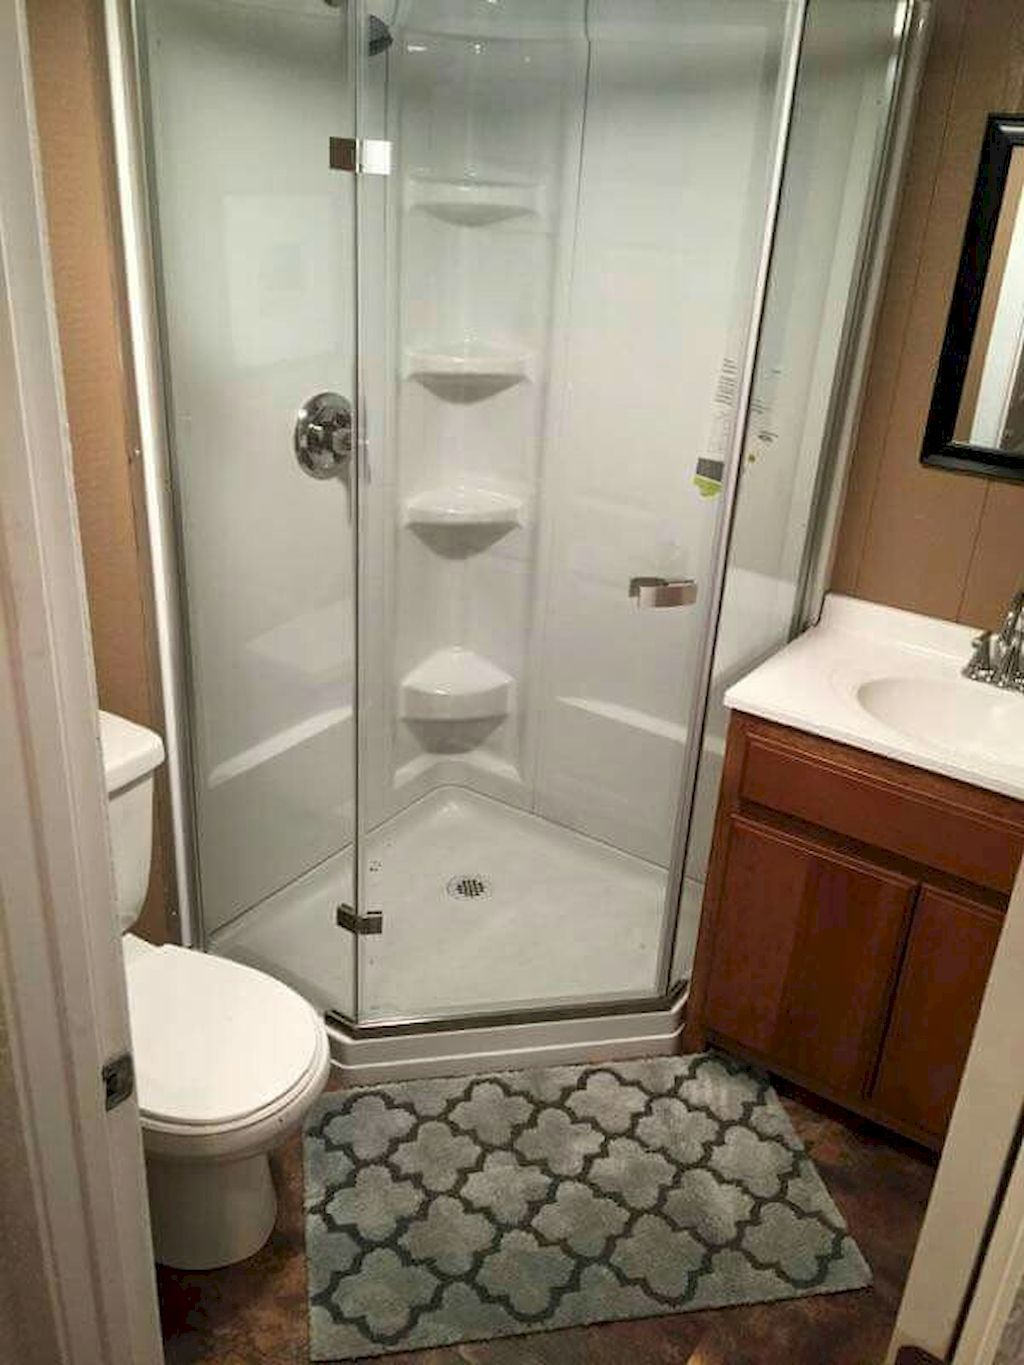 Gorgeous 75 Simple Tiny Space Bathroom Ideas On A Budget Https Homeastern Com 2017 07 12 Small Bathroom Tiny House Bathroom